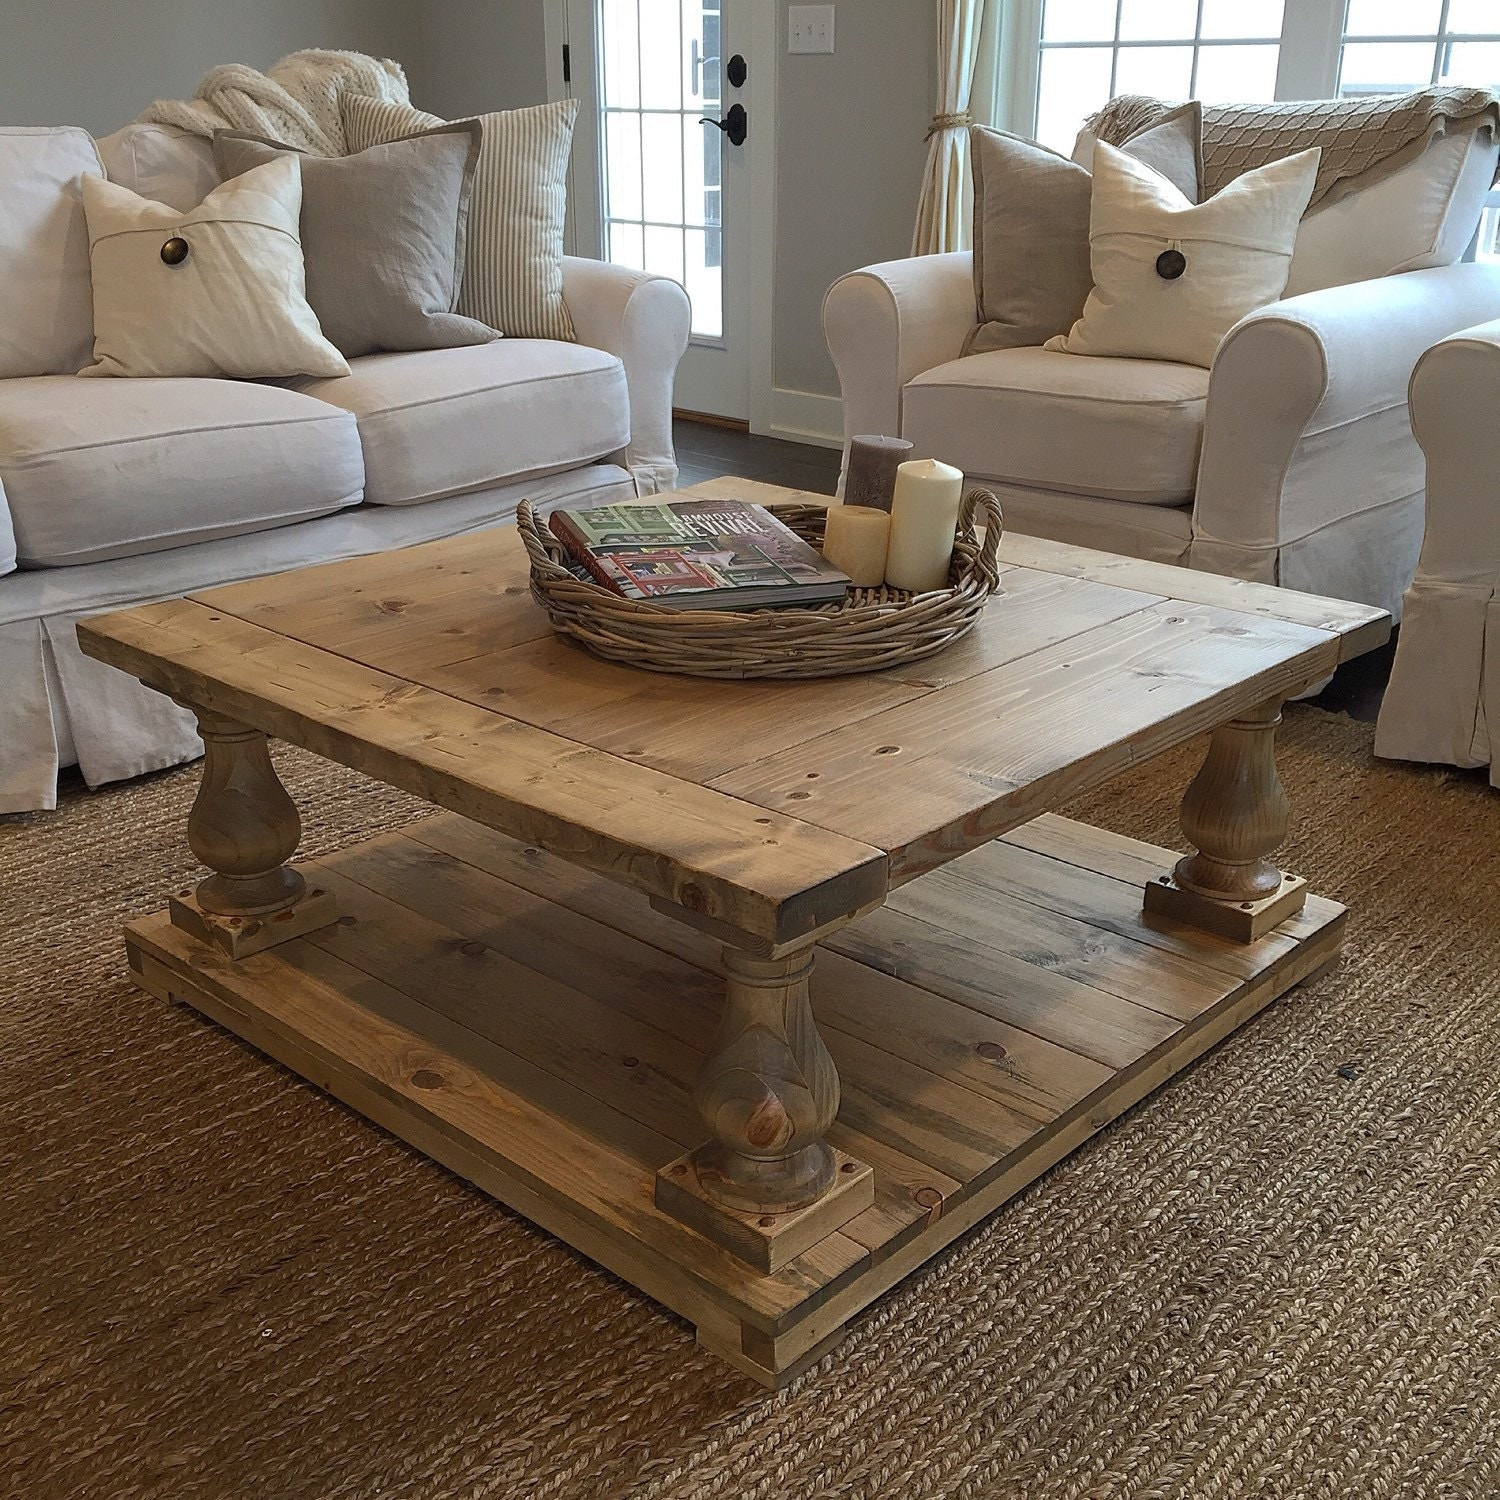 Rustic farmhouse cottage baluster coffee table Farmhouse coffee tables